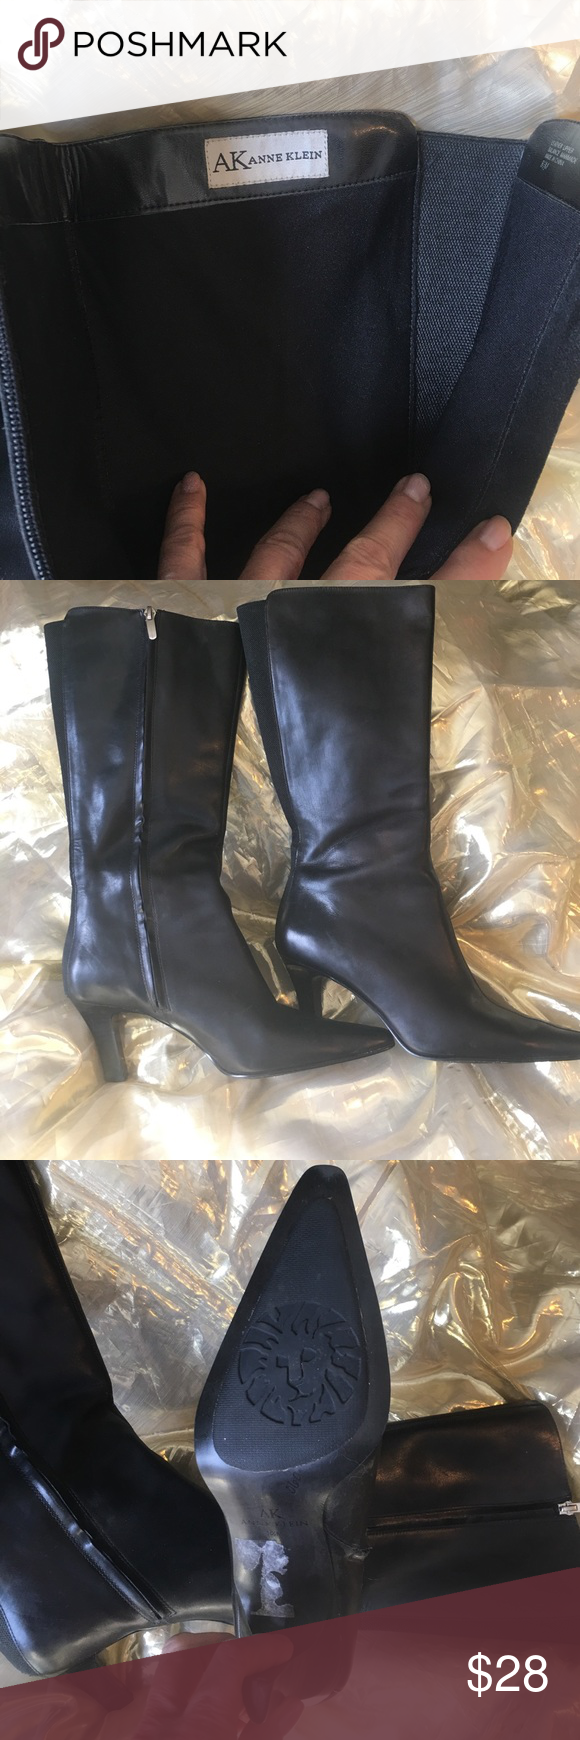 Anne Klein black leather boots These boots are so classic worn seldom if ever 👀 look brand new!!!! Anne Klein Shoes Ankle Boots & Booties